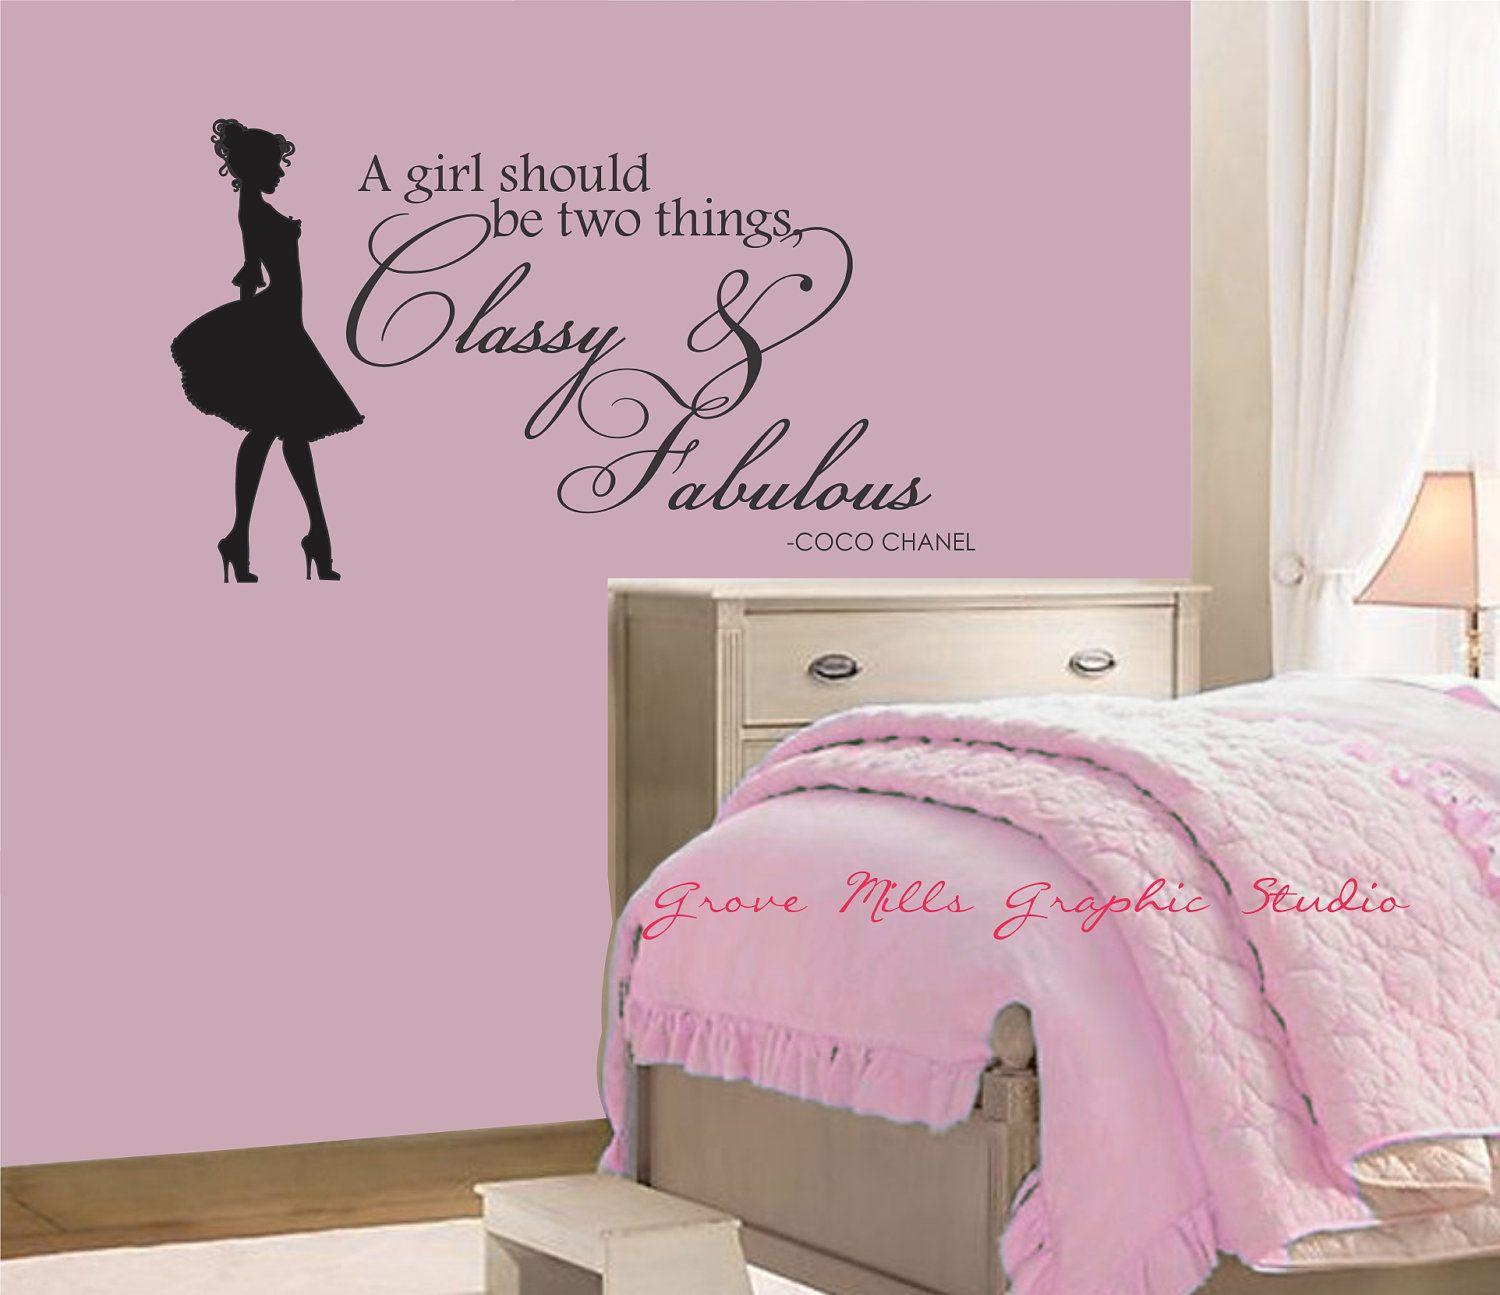 Bedroom wall art quotes - Classy And Fabulous Wall Decal Coco Chanel Wall Quote Girls Room Wall Decal Girls Room Wall Art Girl Wall Decor